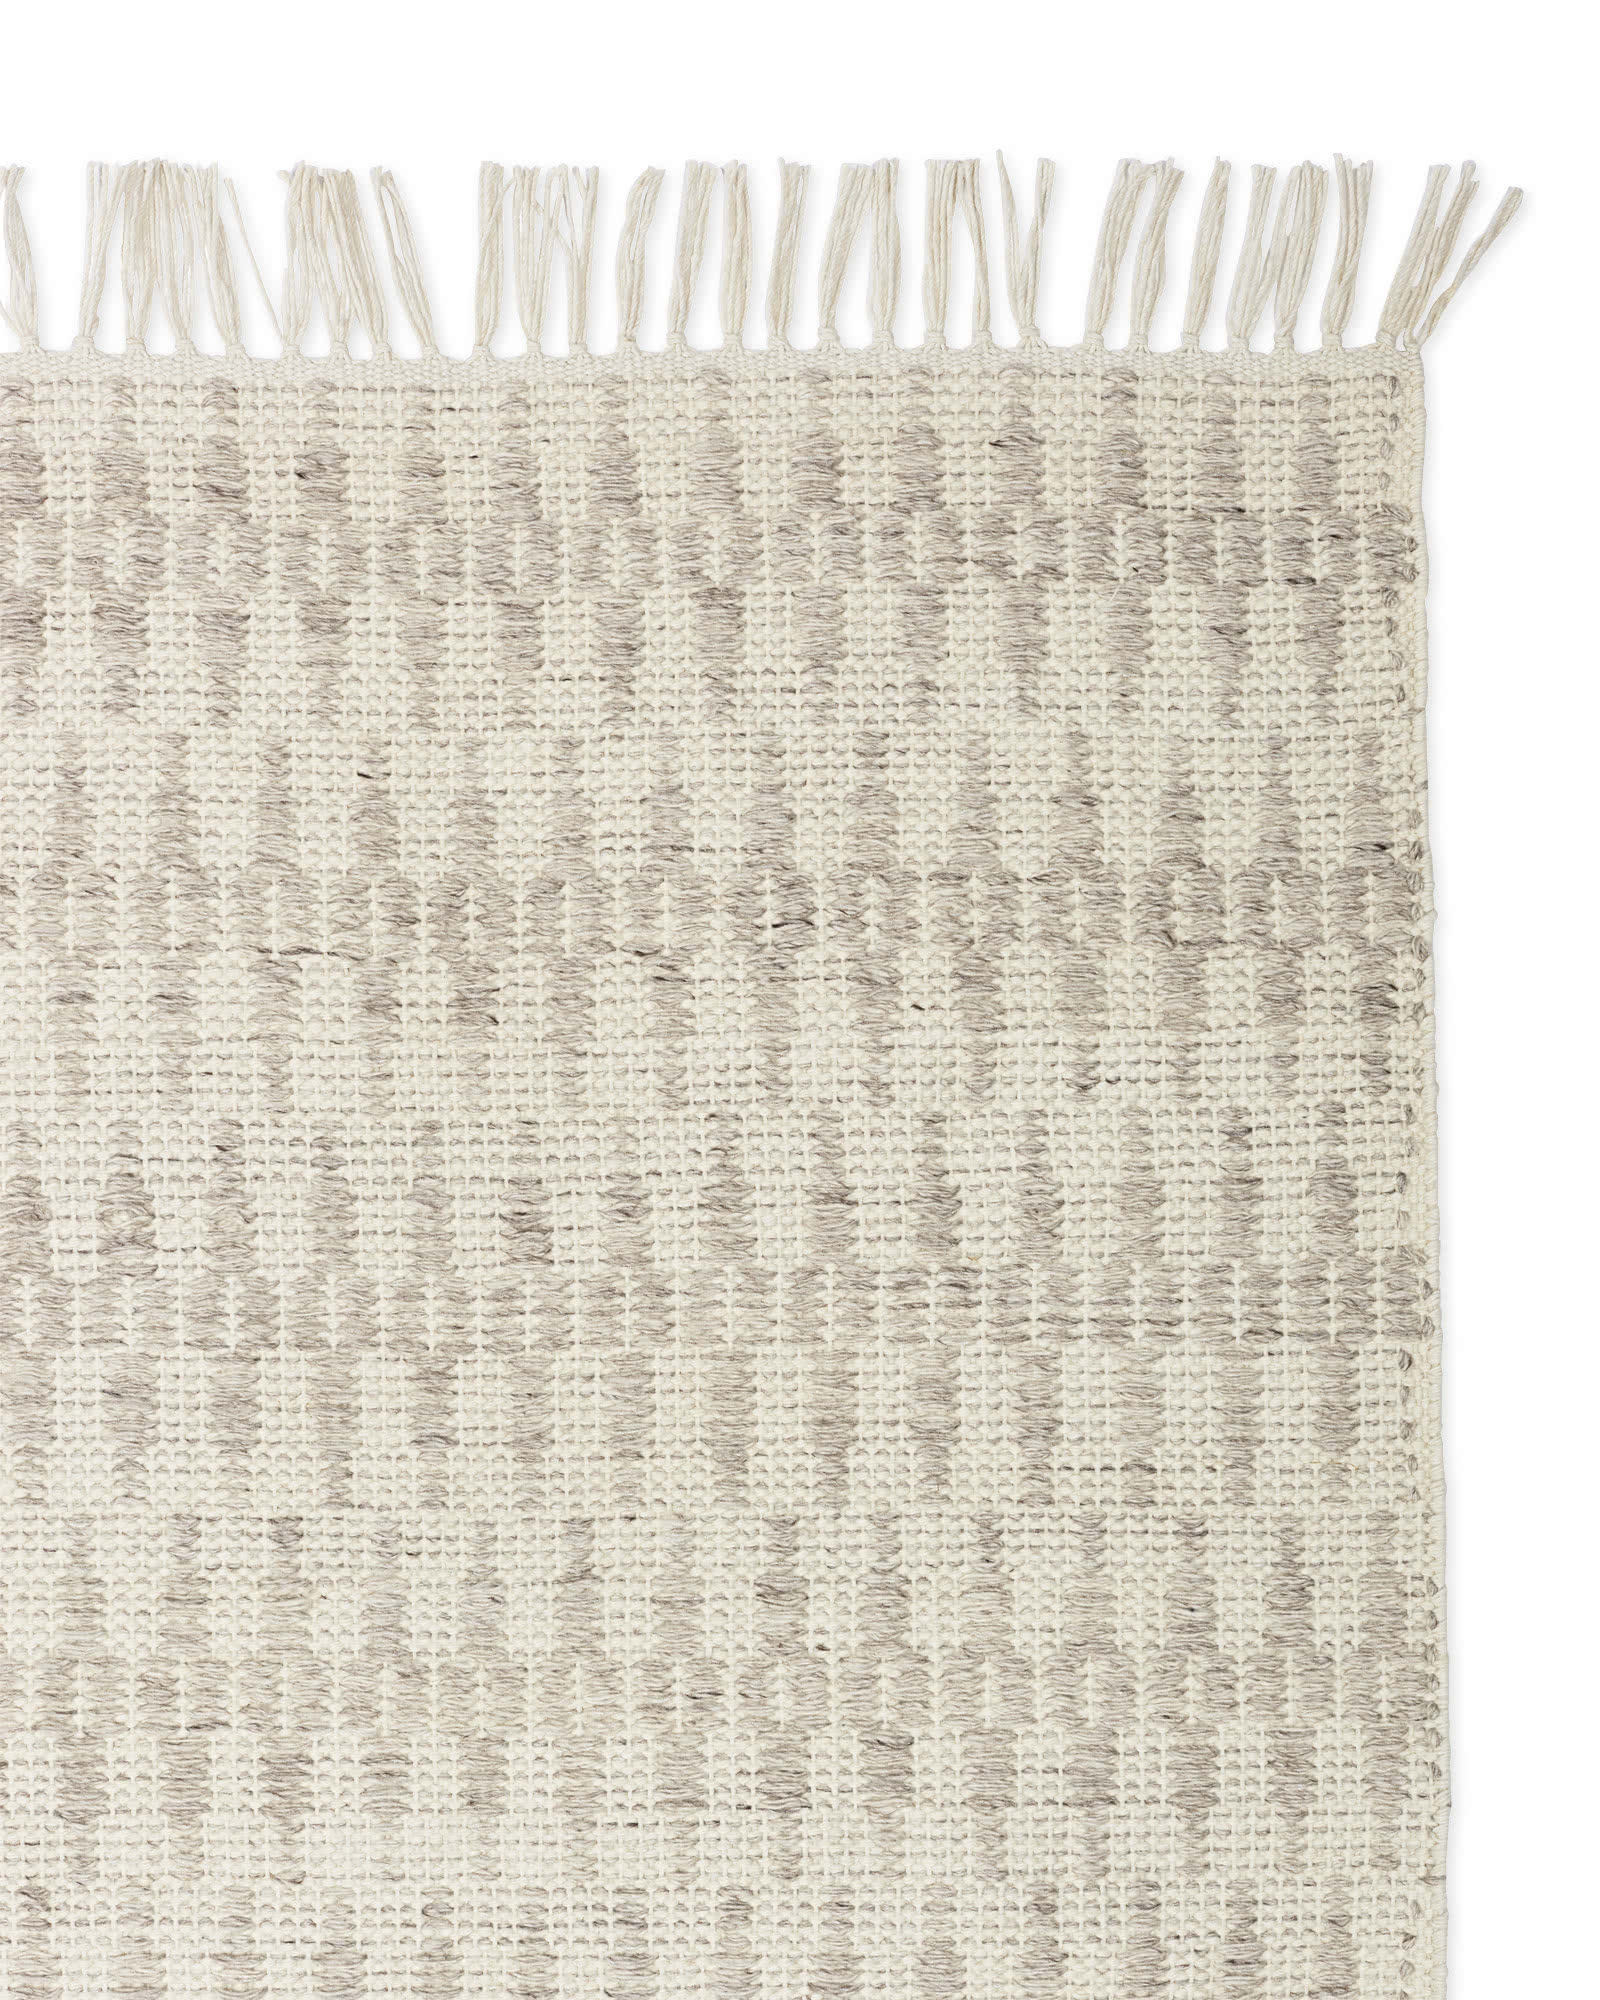 South Shore Rug Swatch, Oyster